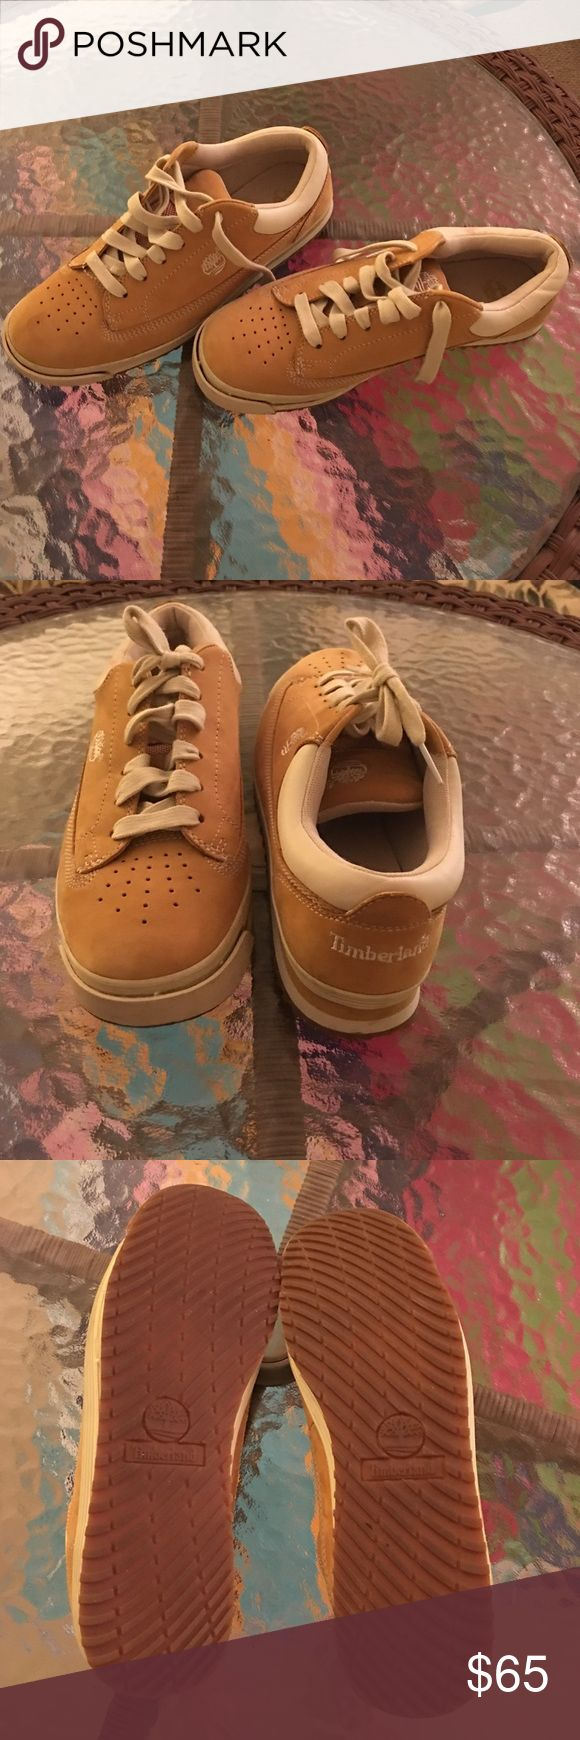 Timberlands💥♨️sale Tan low top timbs with cream accents. Woman's size 8M. Worn once for about 2-3 hrs inside only. They were just a bit to wide big for me. Timberland Shoes